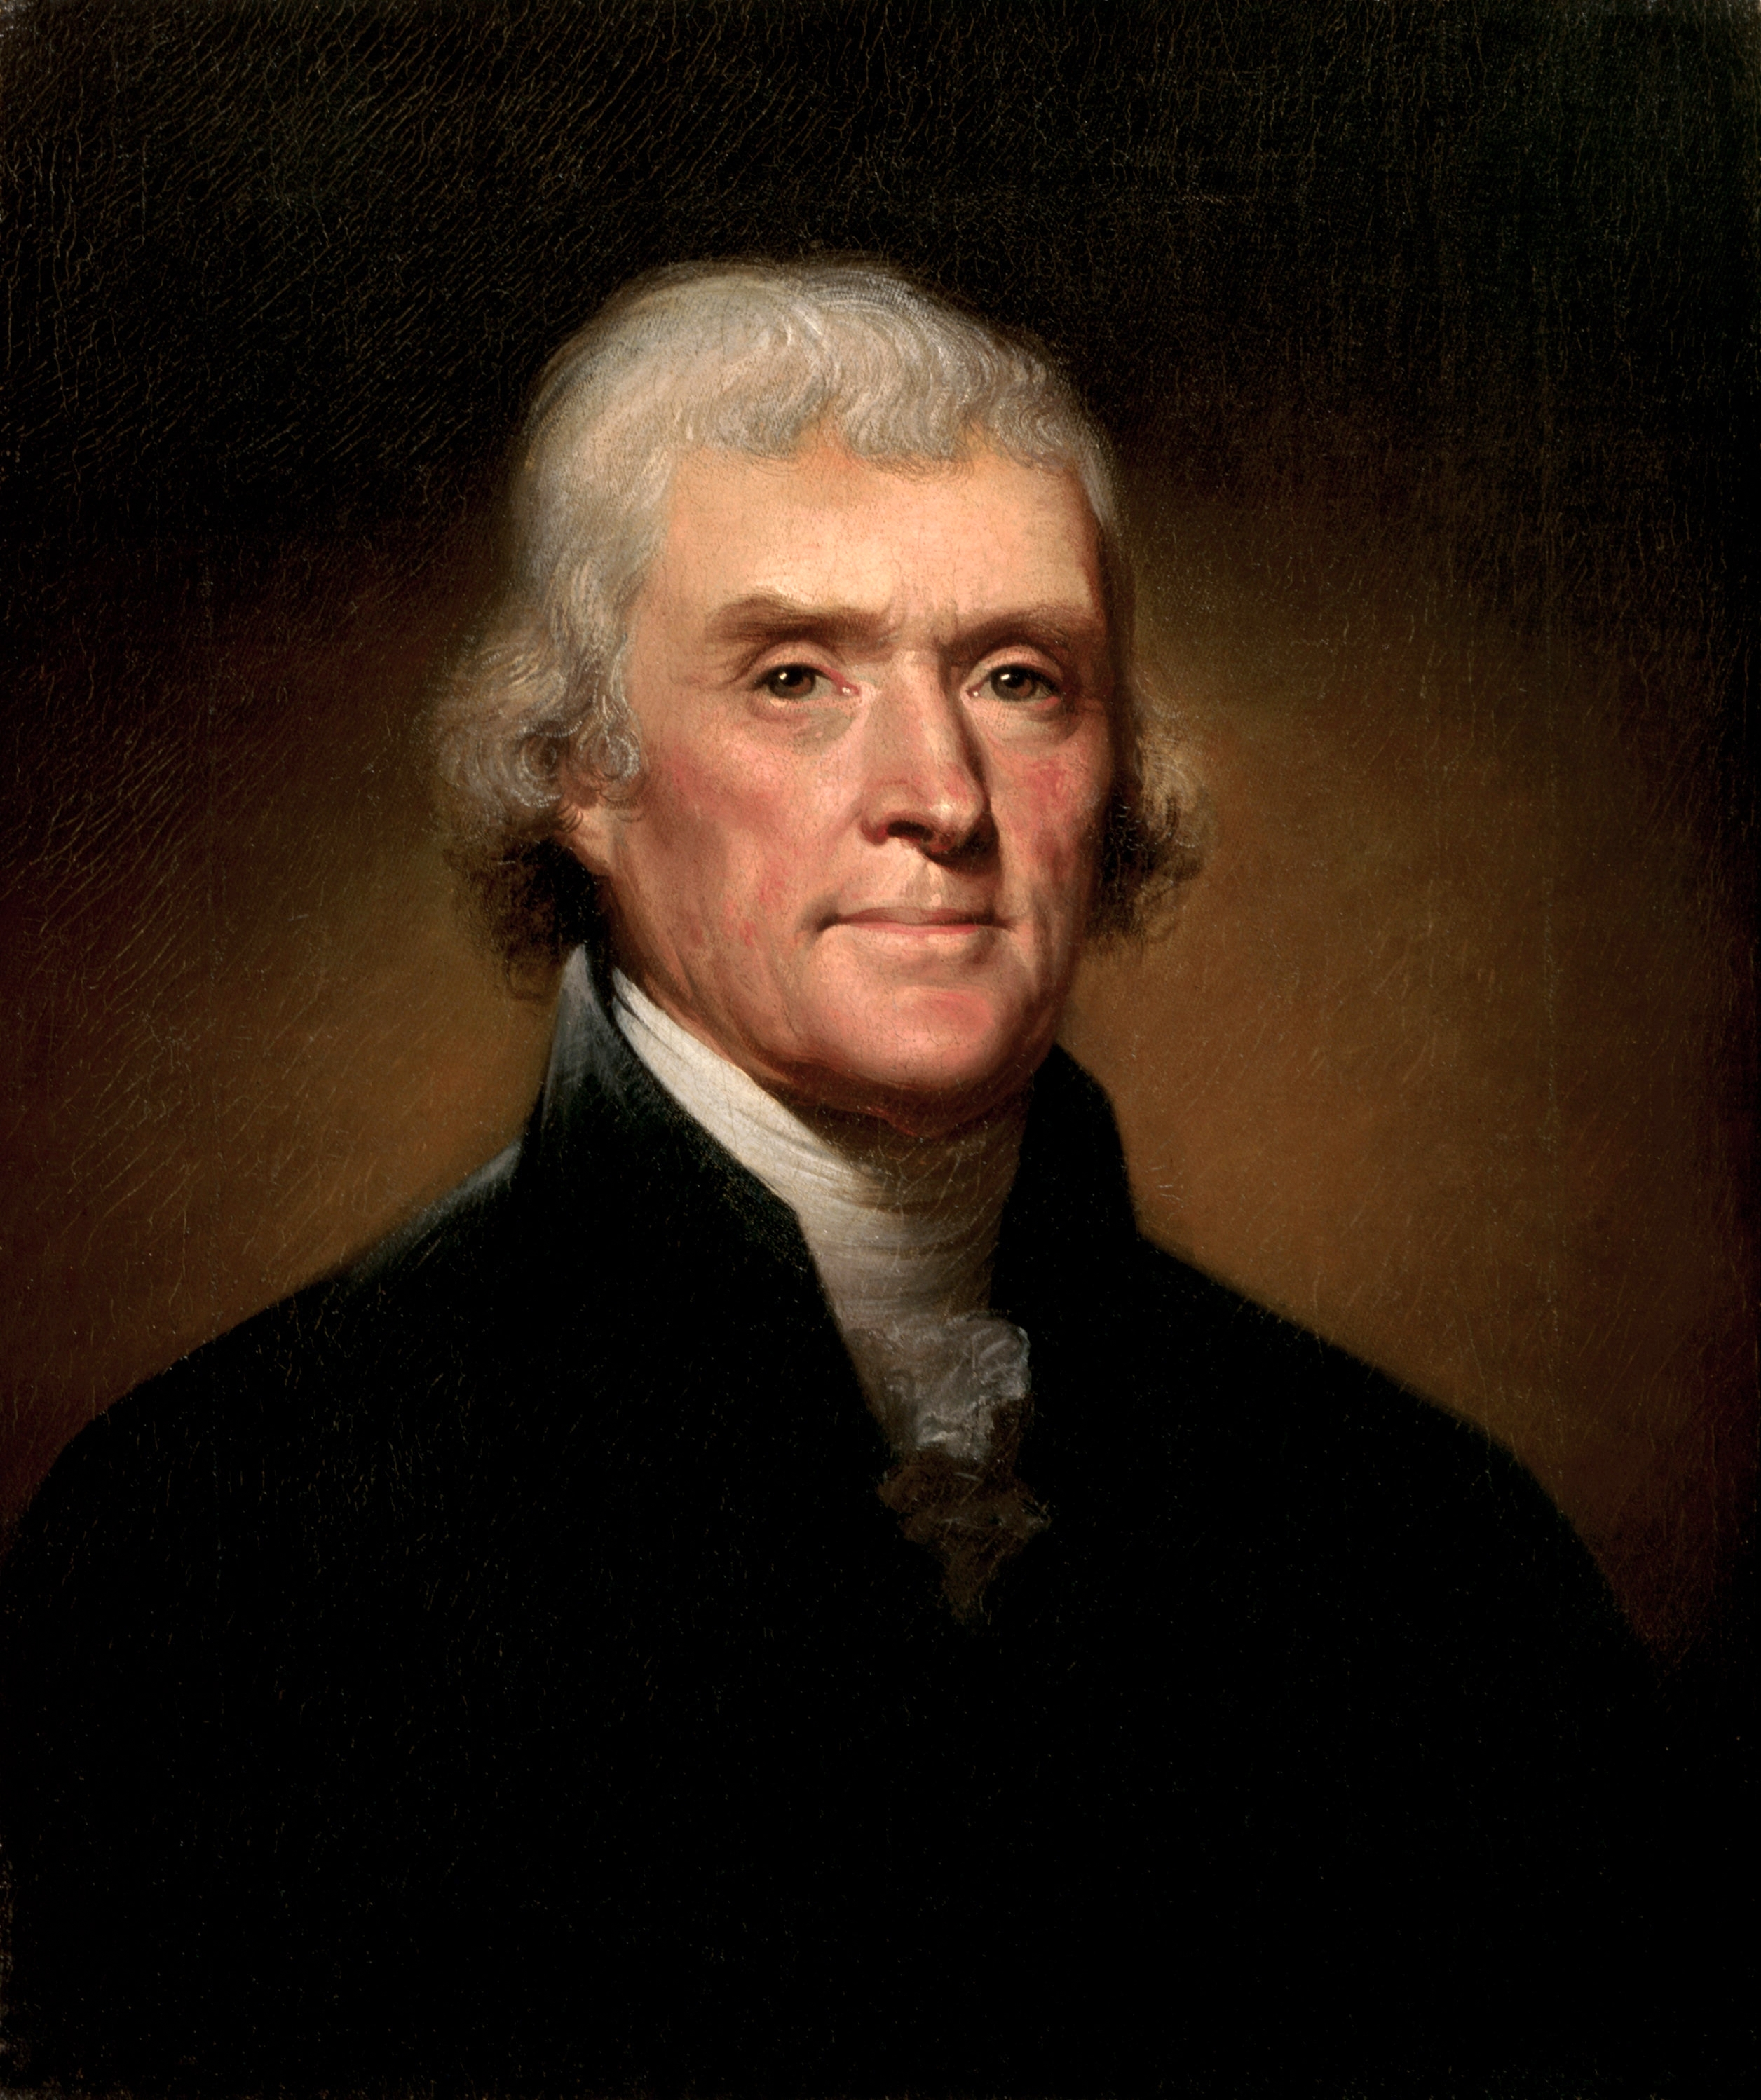 external image Thomas_Jefferson_by_Rembrandt_Peale%2C_1800.jpg